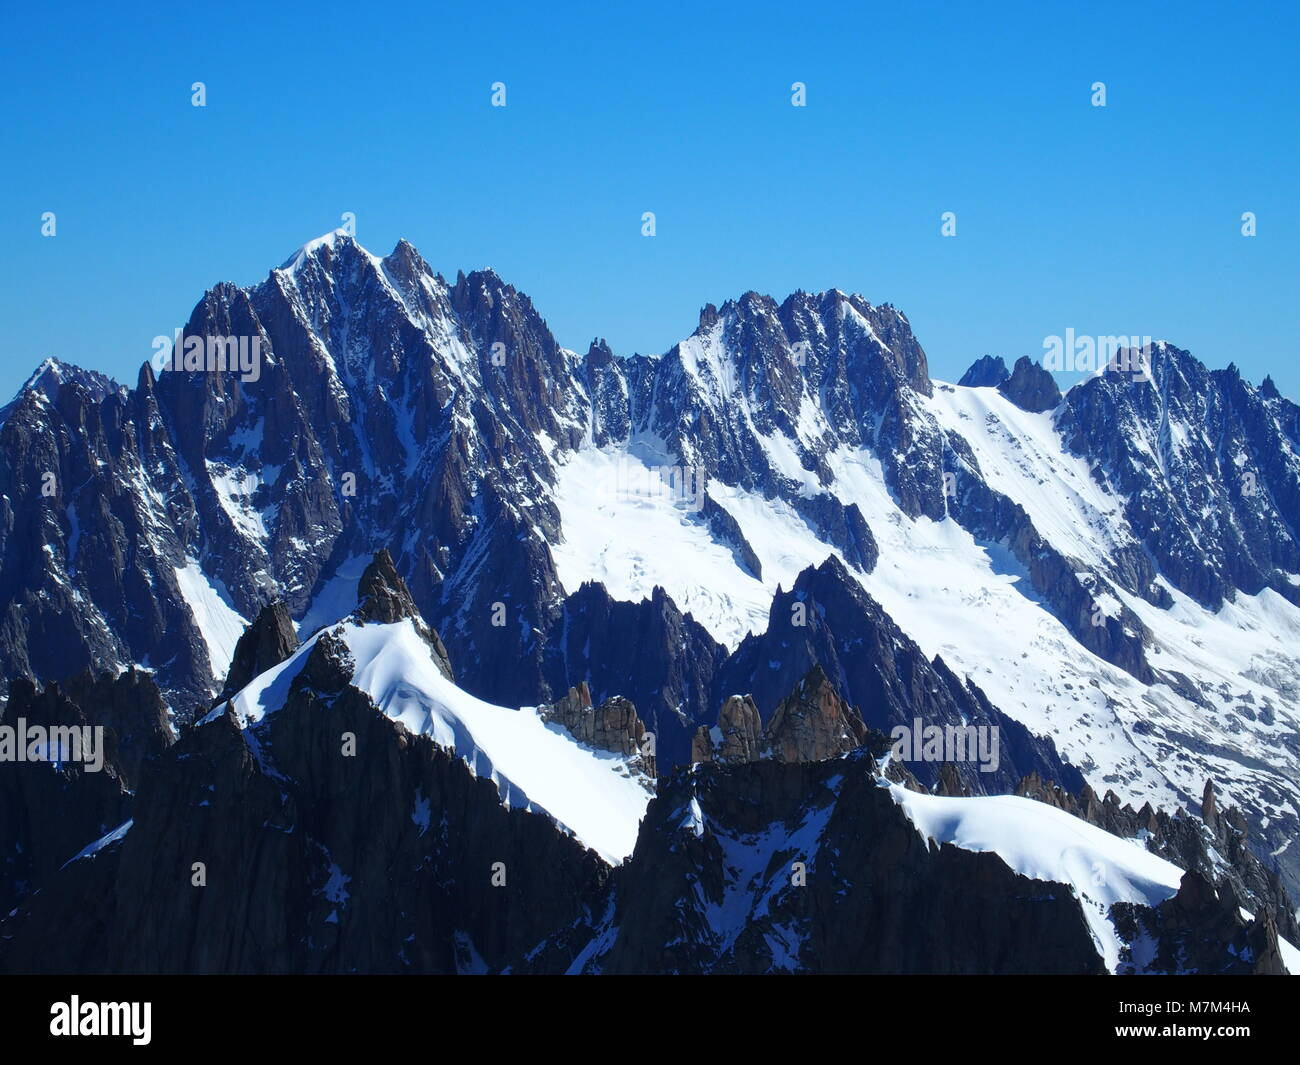 Alpine mountains range landscape in French ALPS seen from Aiguille du Midi at CHAMONIX MONT BLANC in FRANCE Stock Photo